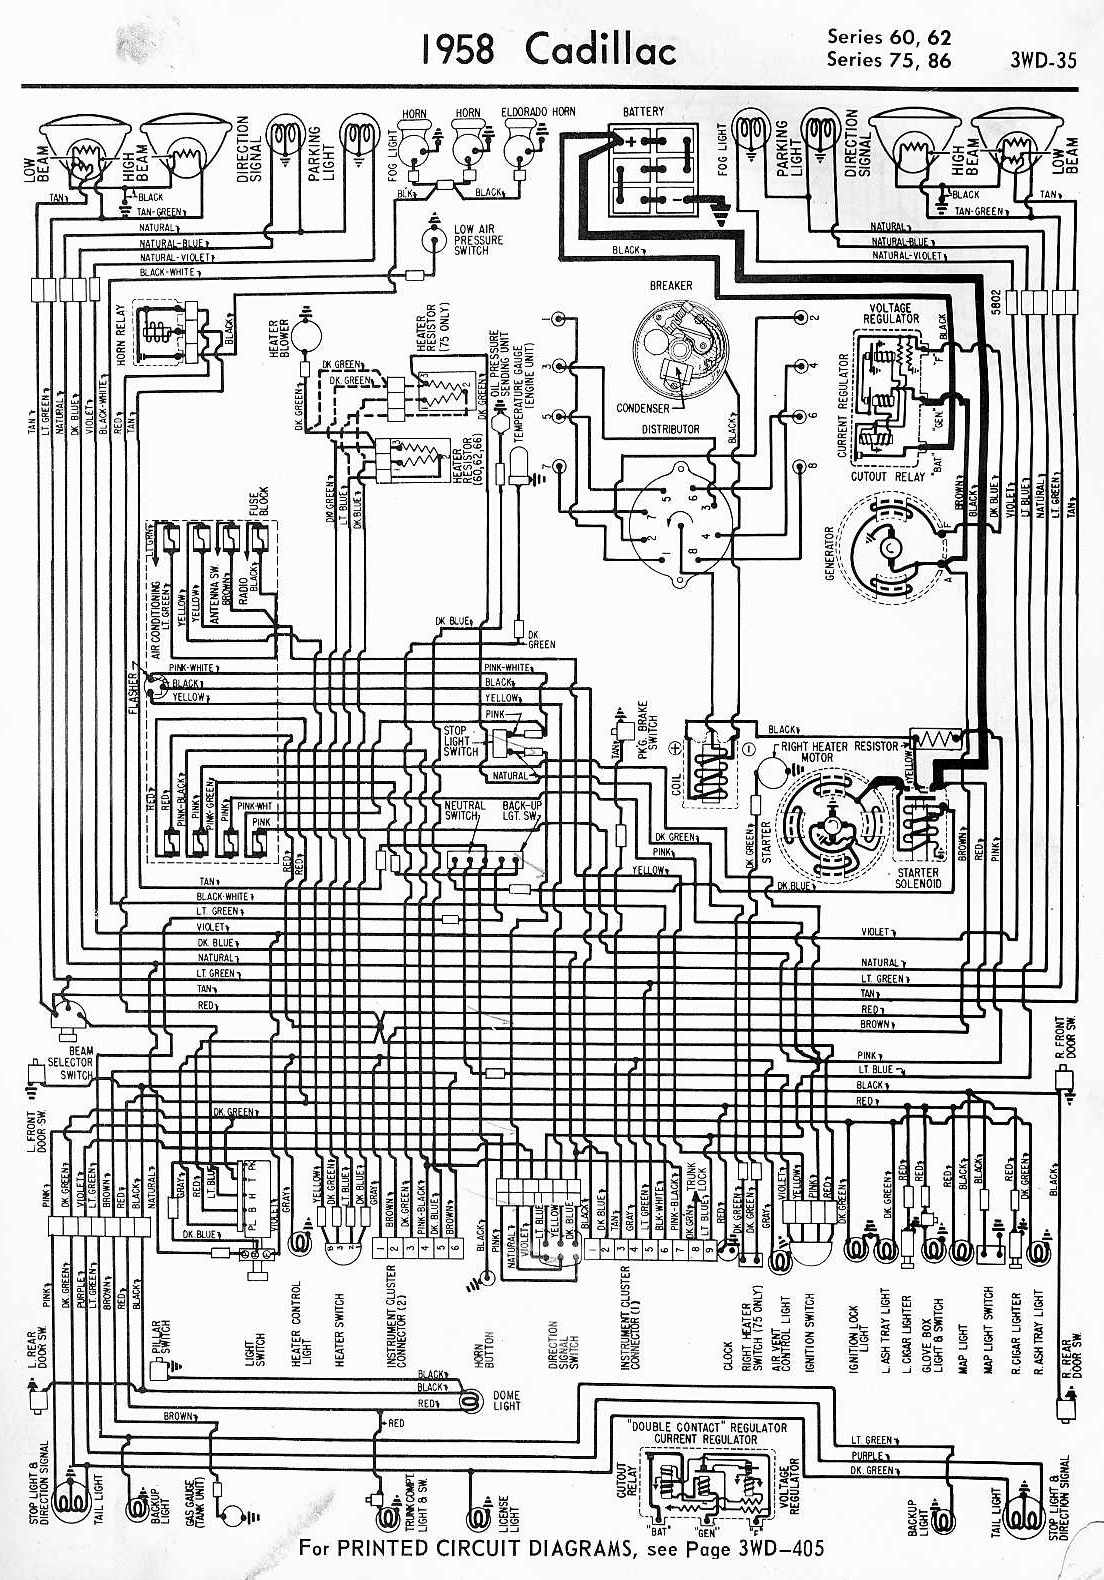 1958 cadillac power seat wiring diagram schematic Gallery